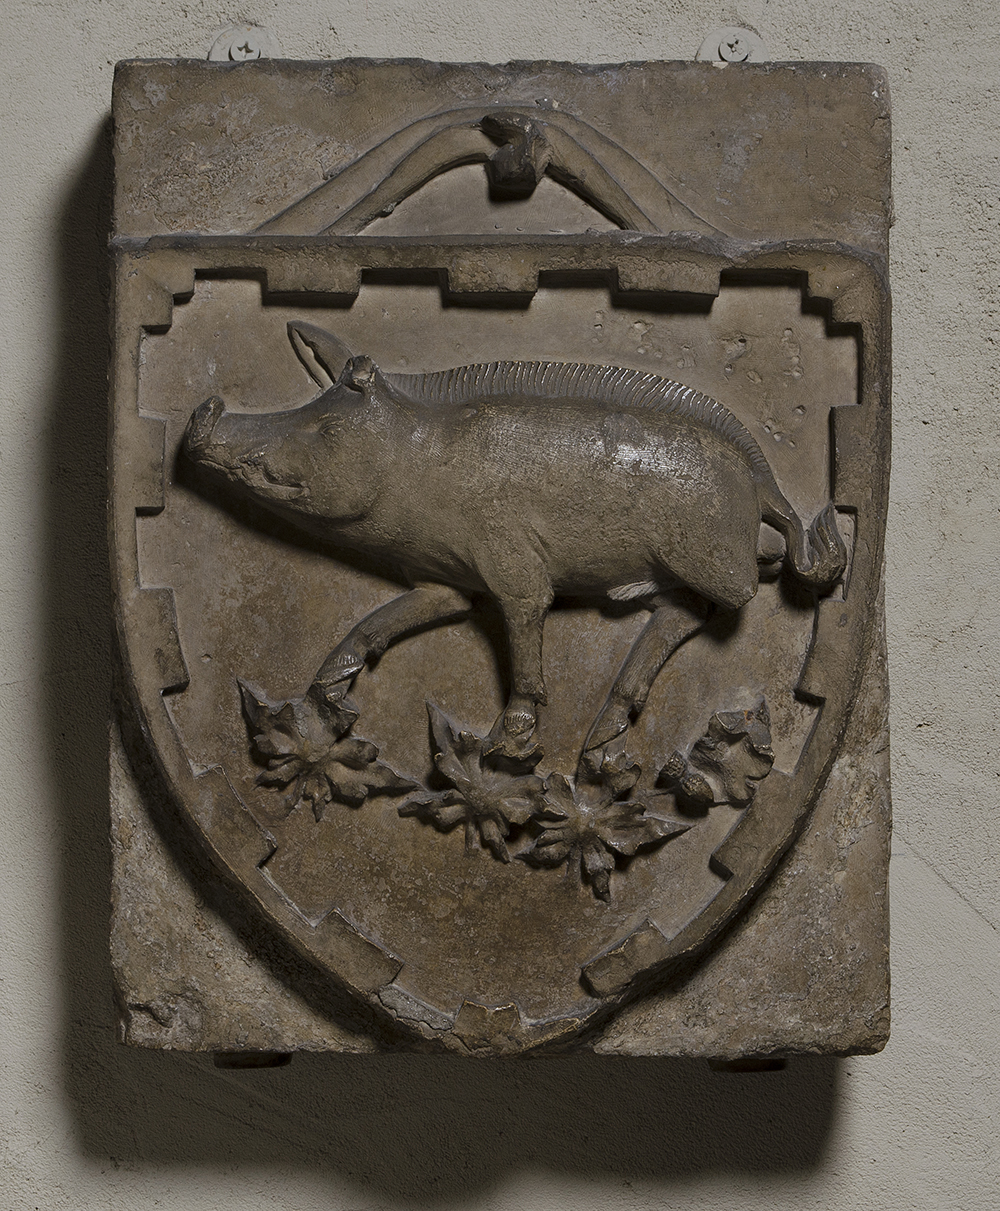 Coat of arms, France, late thirteenth or early fourteenth century.